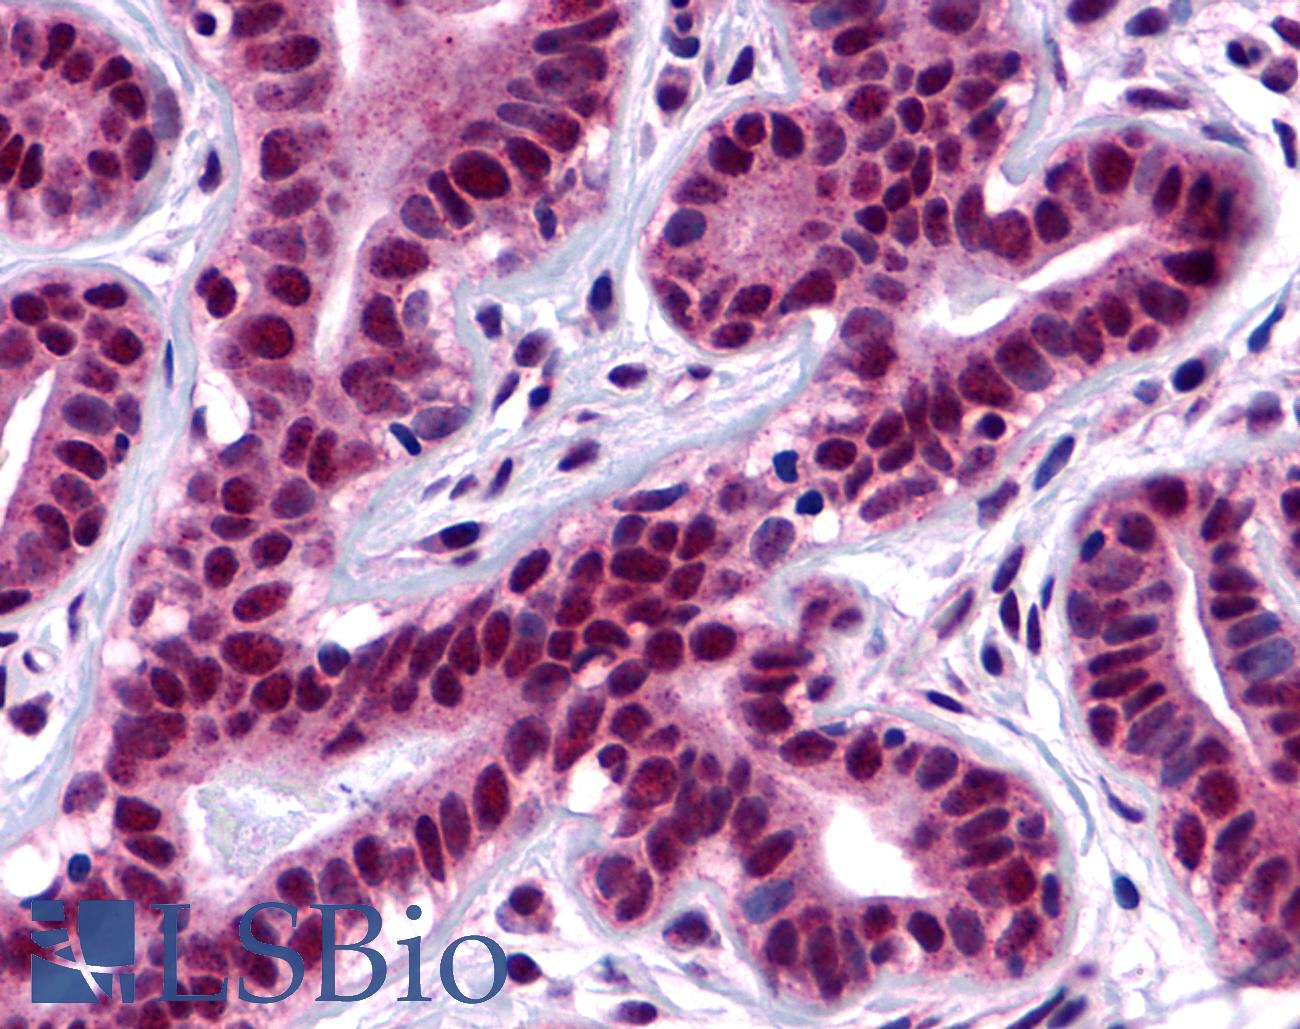 FAK / Focal Adhesion Kinase Antibody - Anti-FAK antibody IHC of human ductal and lobular epithelium. Immunohistochemistry of formalin-fixed, paraffin-embedded tissue after heat-induced antigen retrieval.